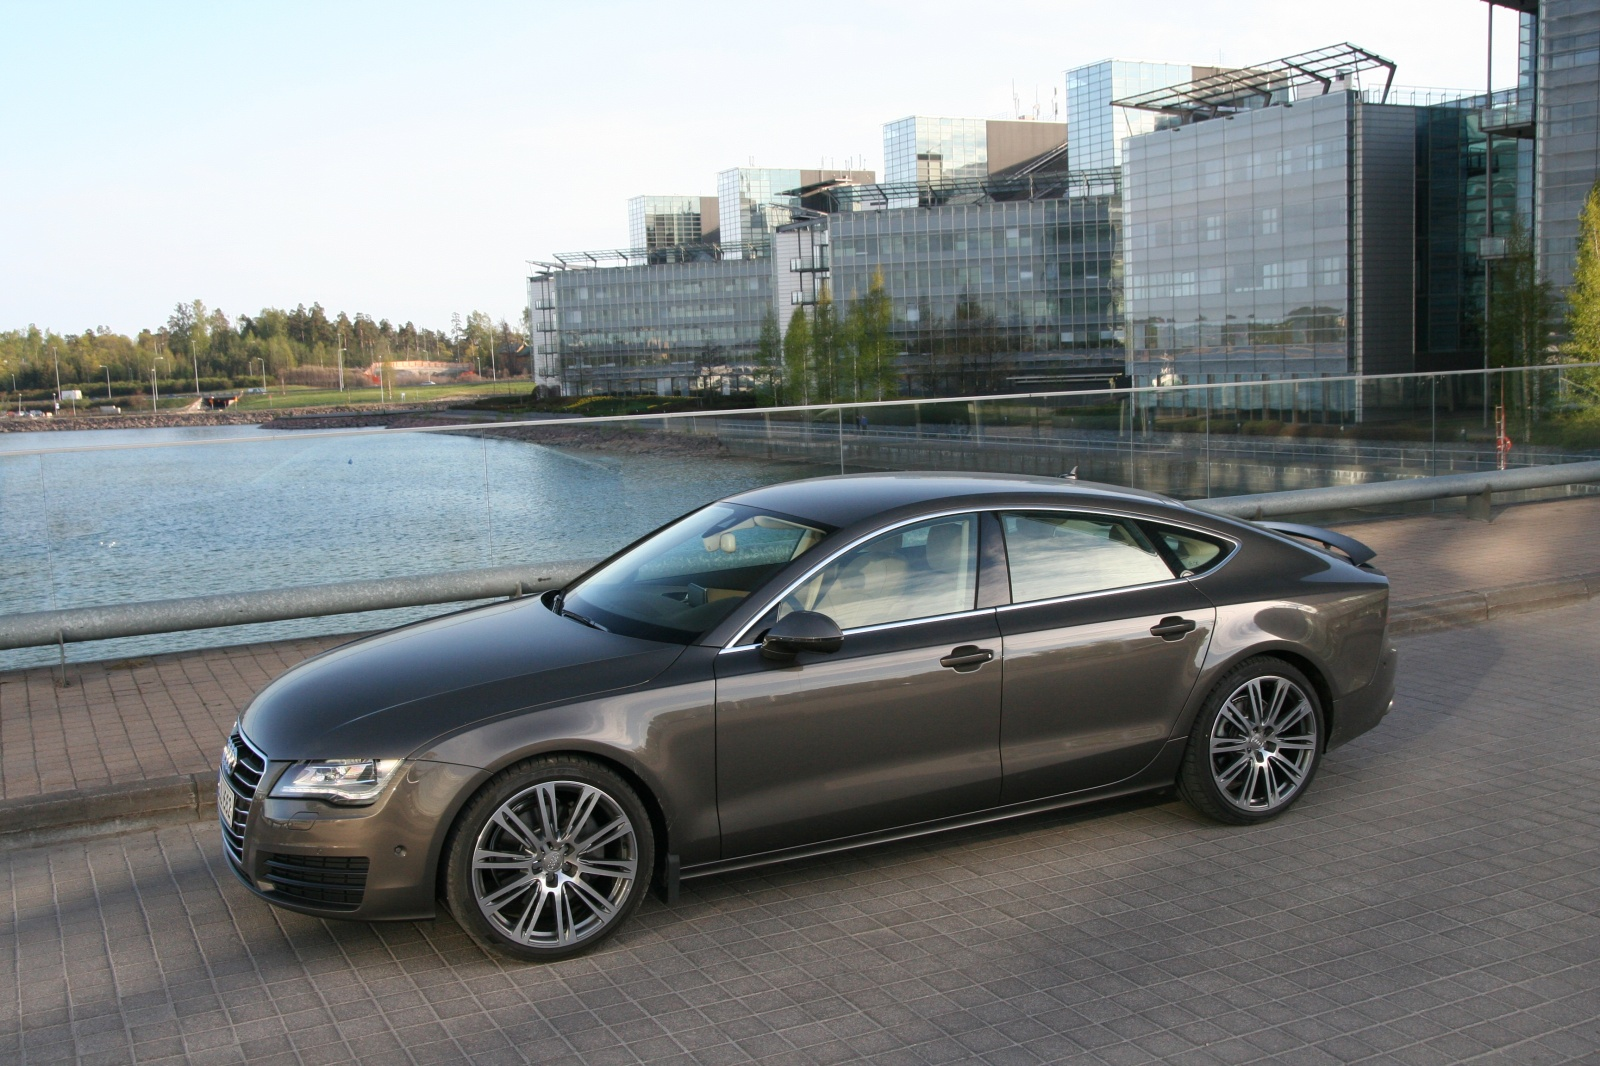 Audi A7 3 0 T >> 2018 Audi A7 Sportback | Car Photos Catalog 2018